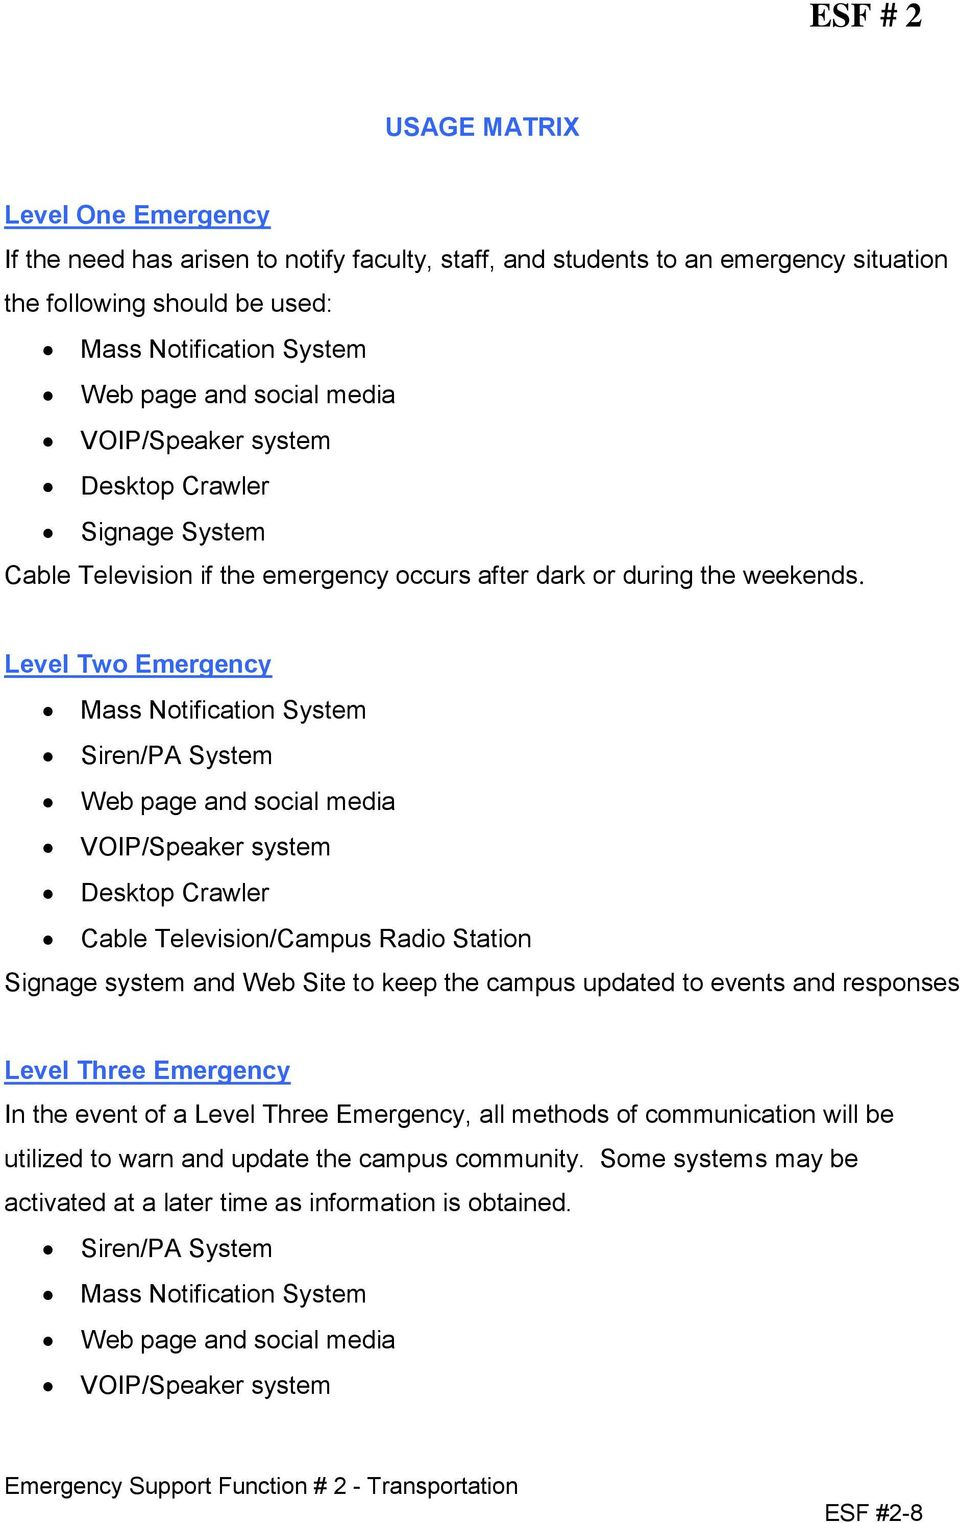 Level Two Emergency Mass Notification System Siren/PA System Web page and social media VOIP/Speaker system Desktop Crawler Cable Television/Campus Radio Station Signage system and Web Site to keep